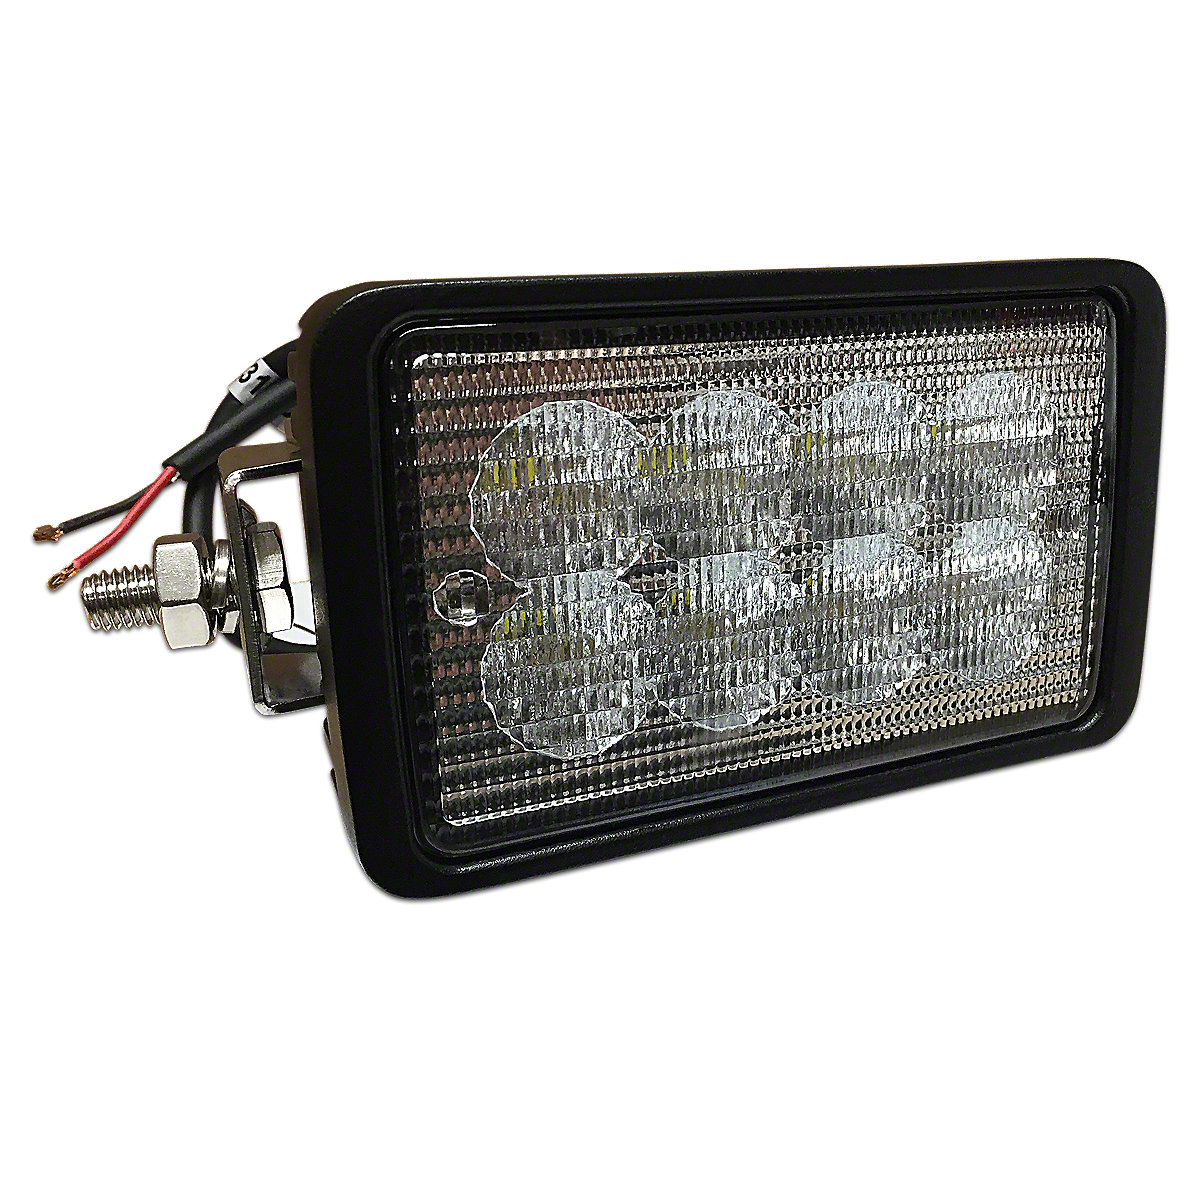 ABC4130 LED Front / Rear Cab Light